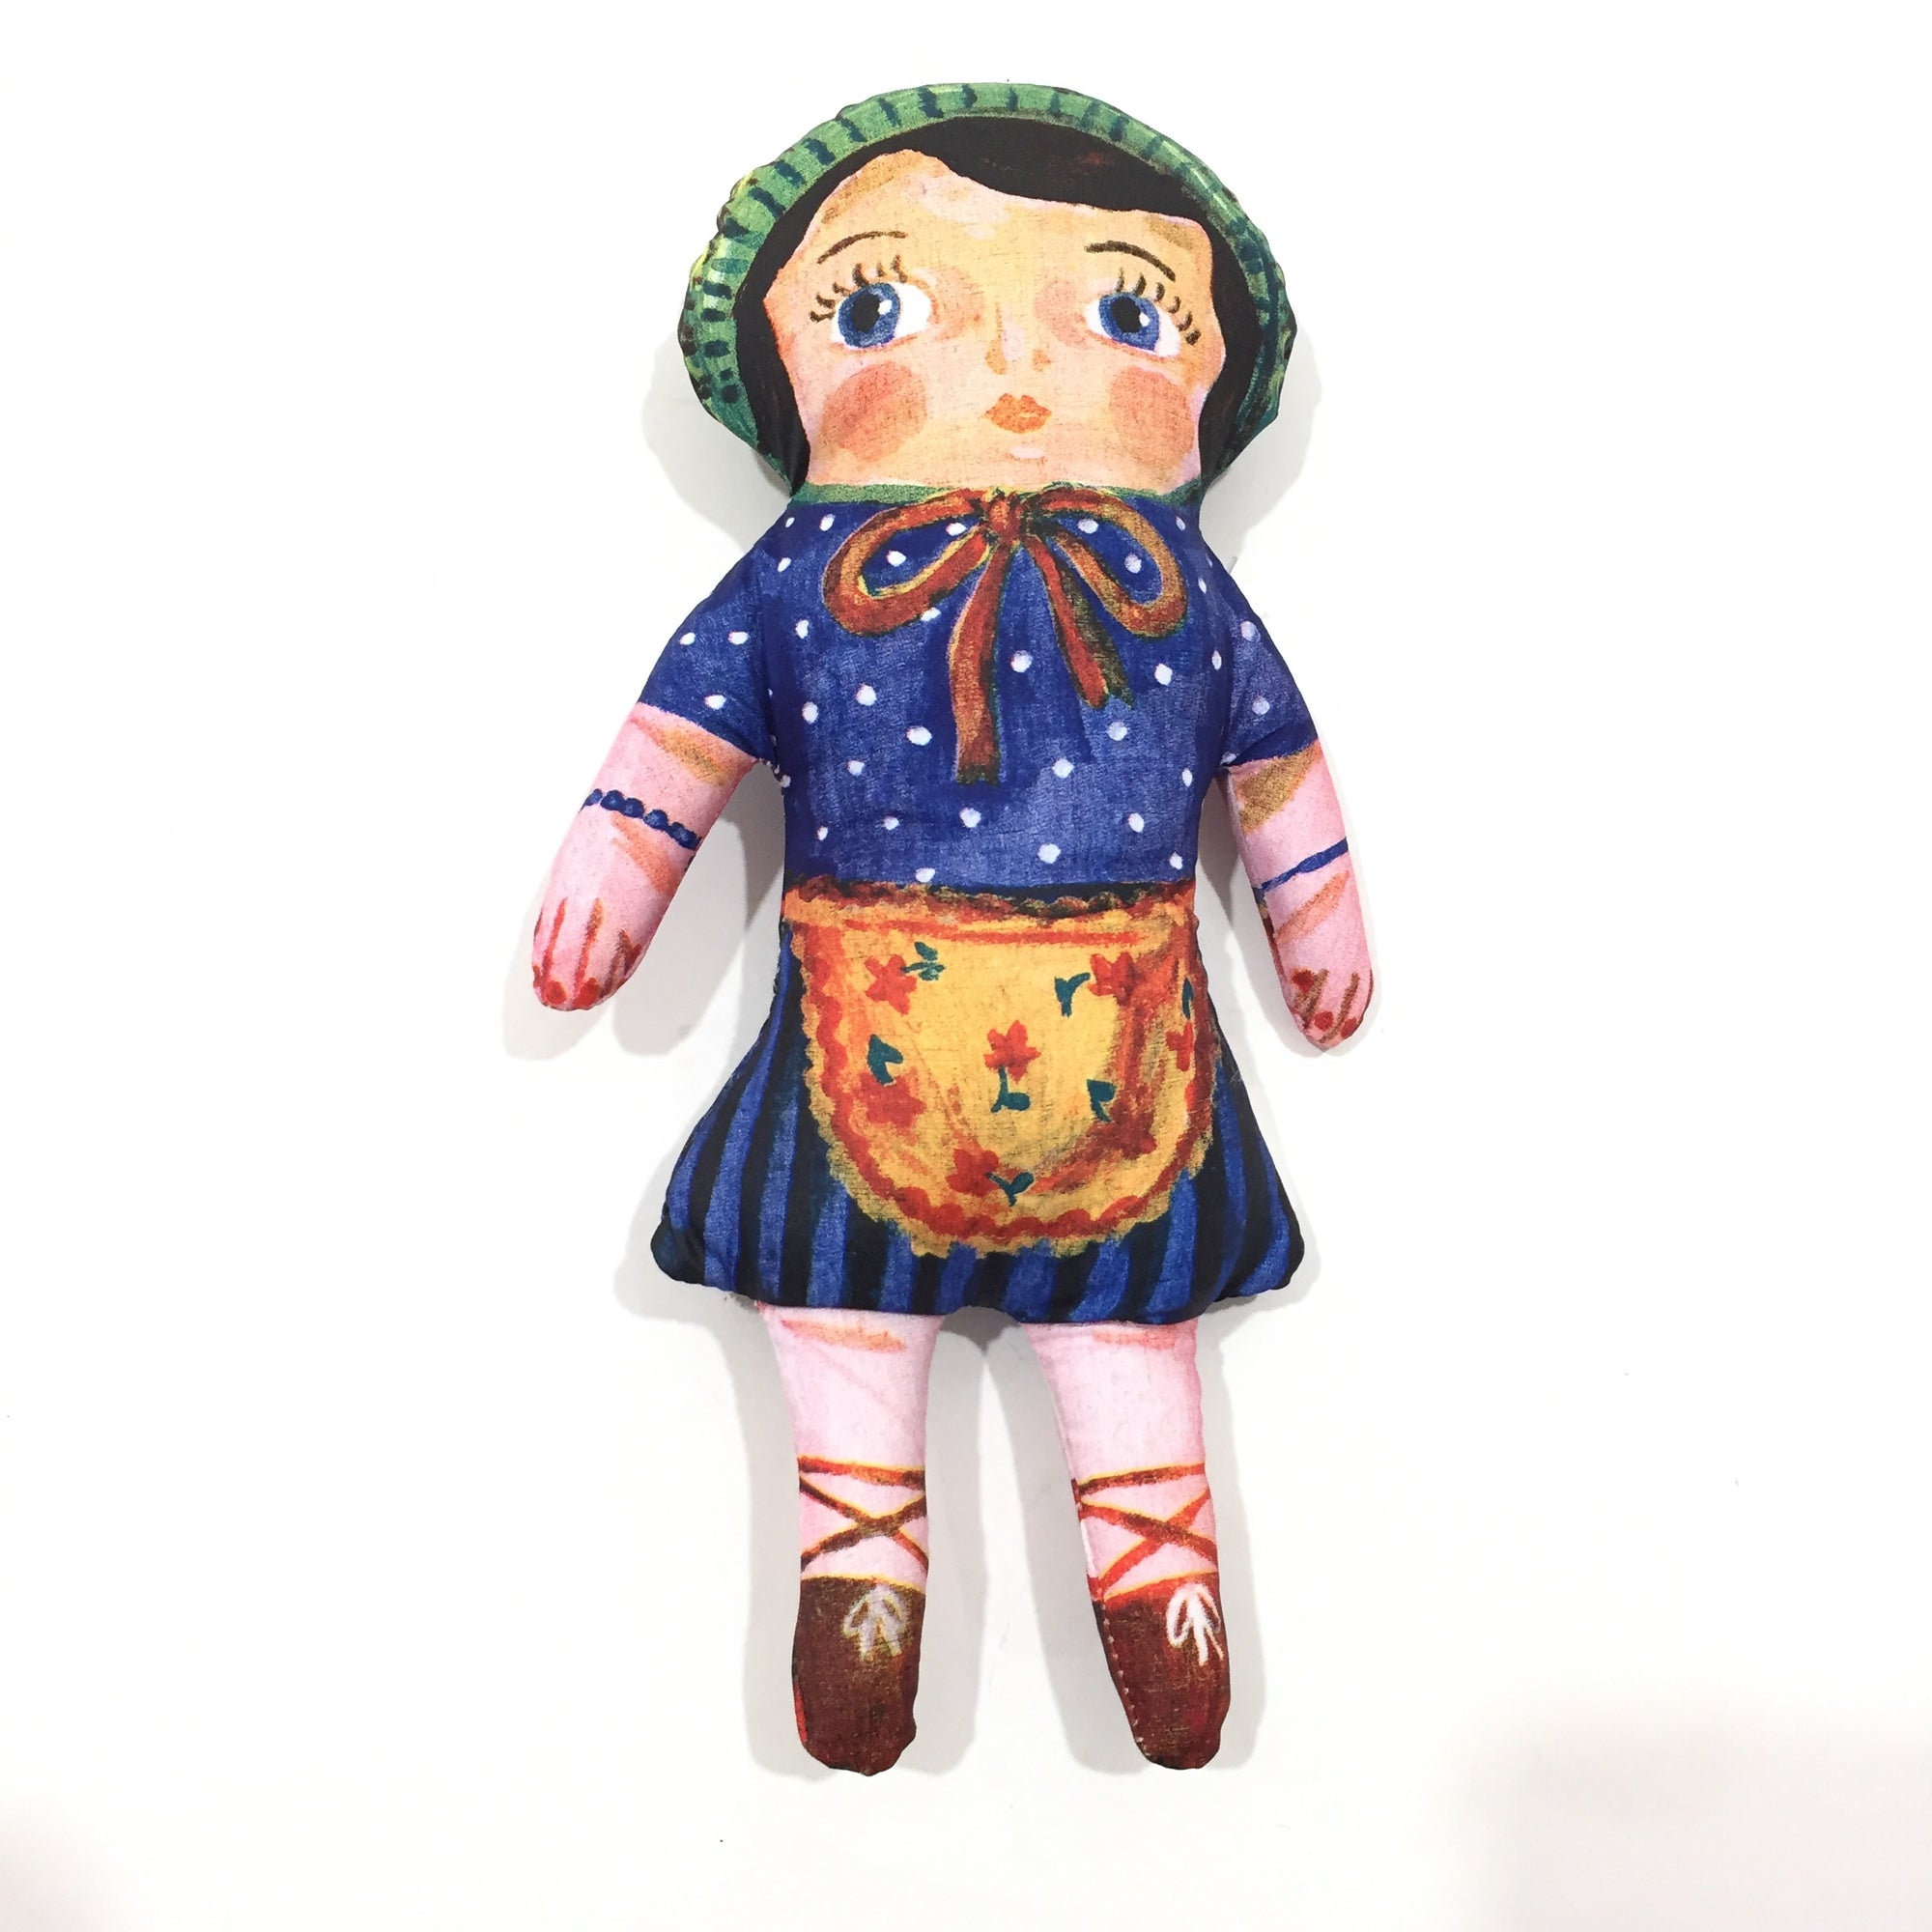 Dolly Doll by Nathalie Lete